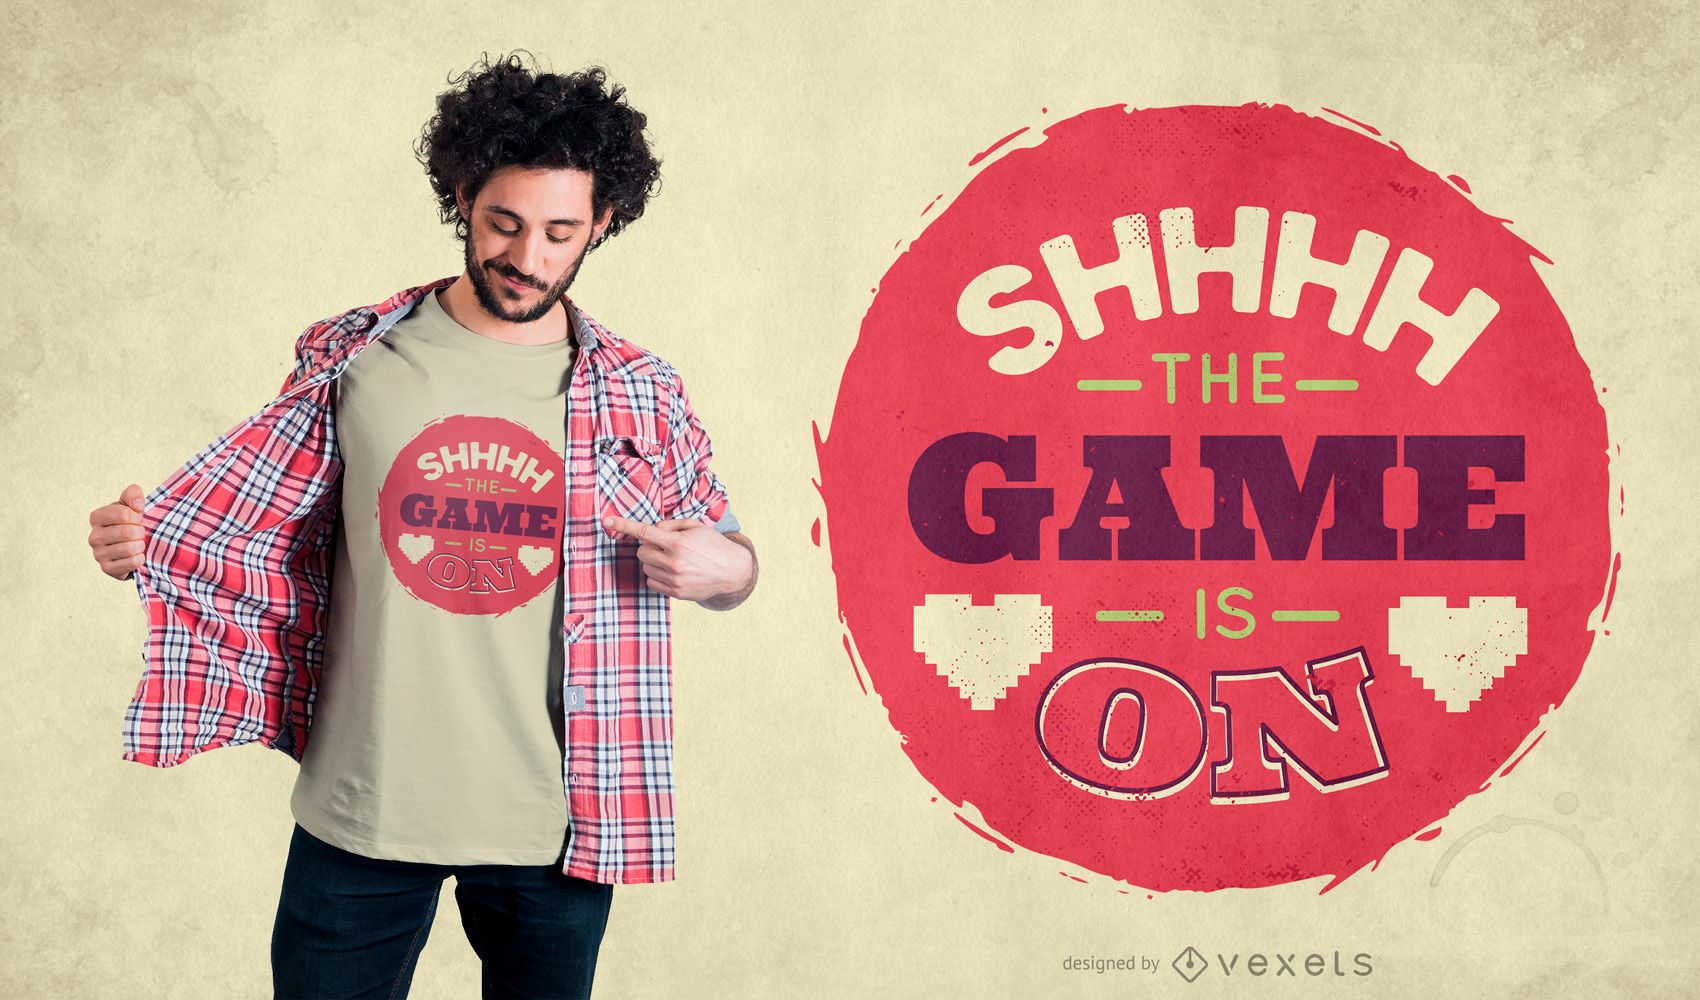 Game on quote t-shirt design